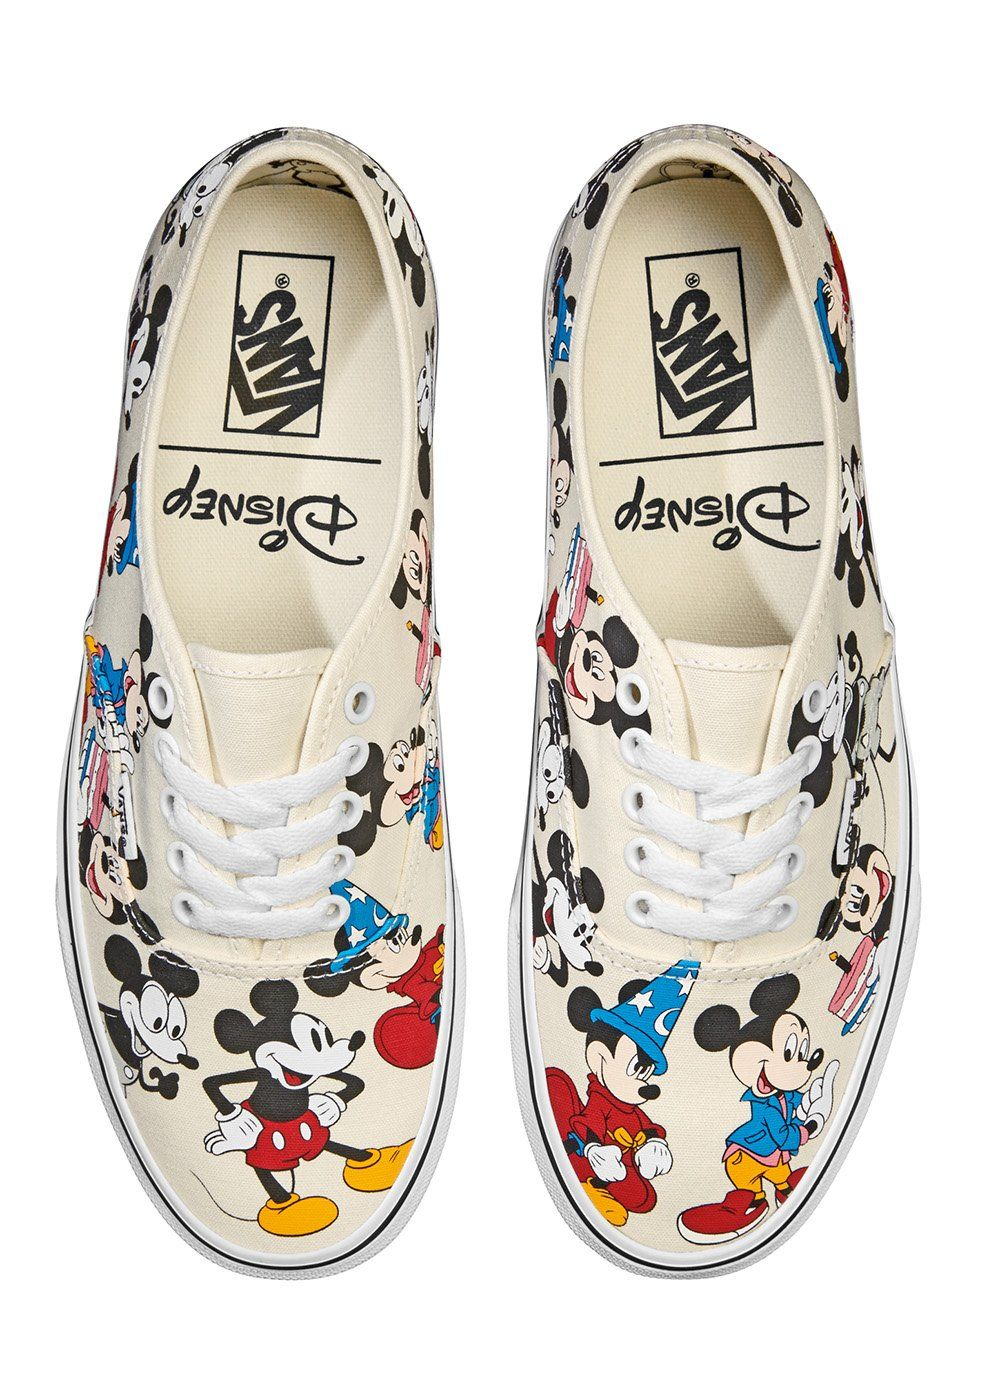 4a56e49eac Vans Disney Authentic Mickey s Birthday - Mens Large Sizes